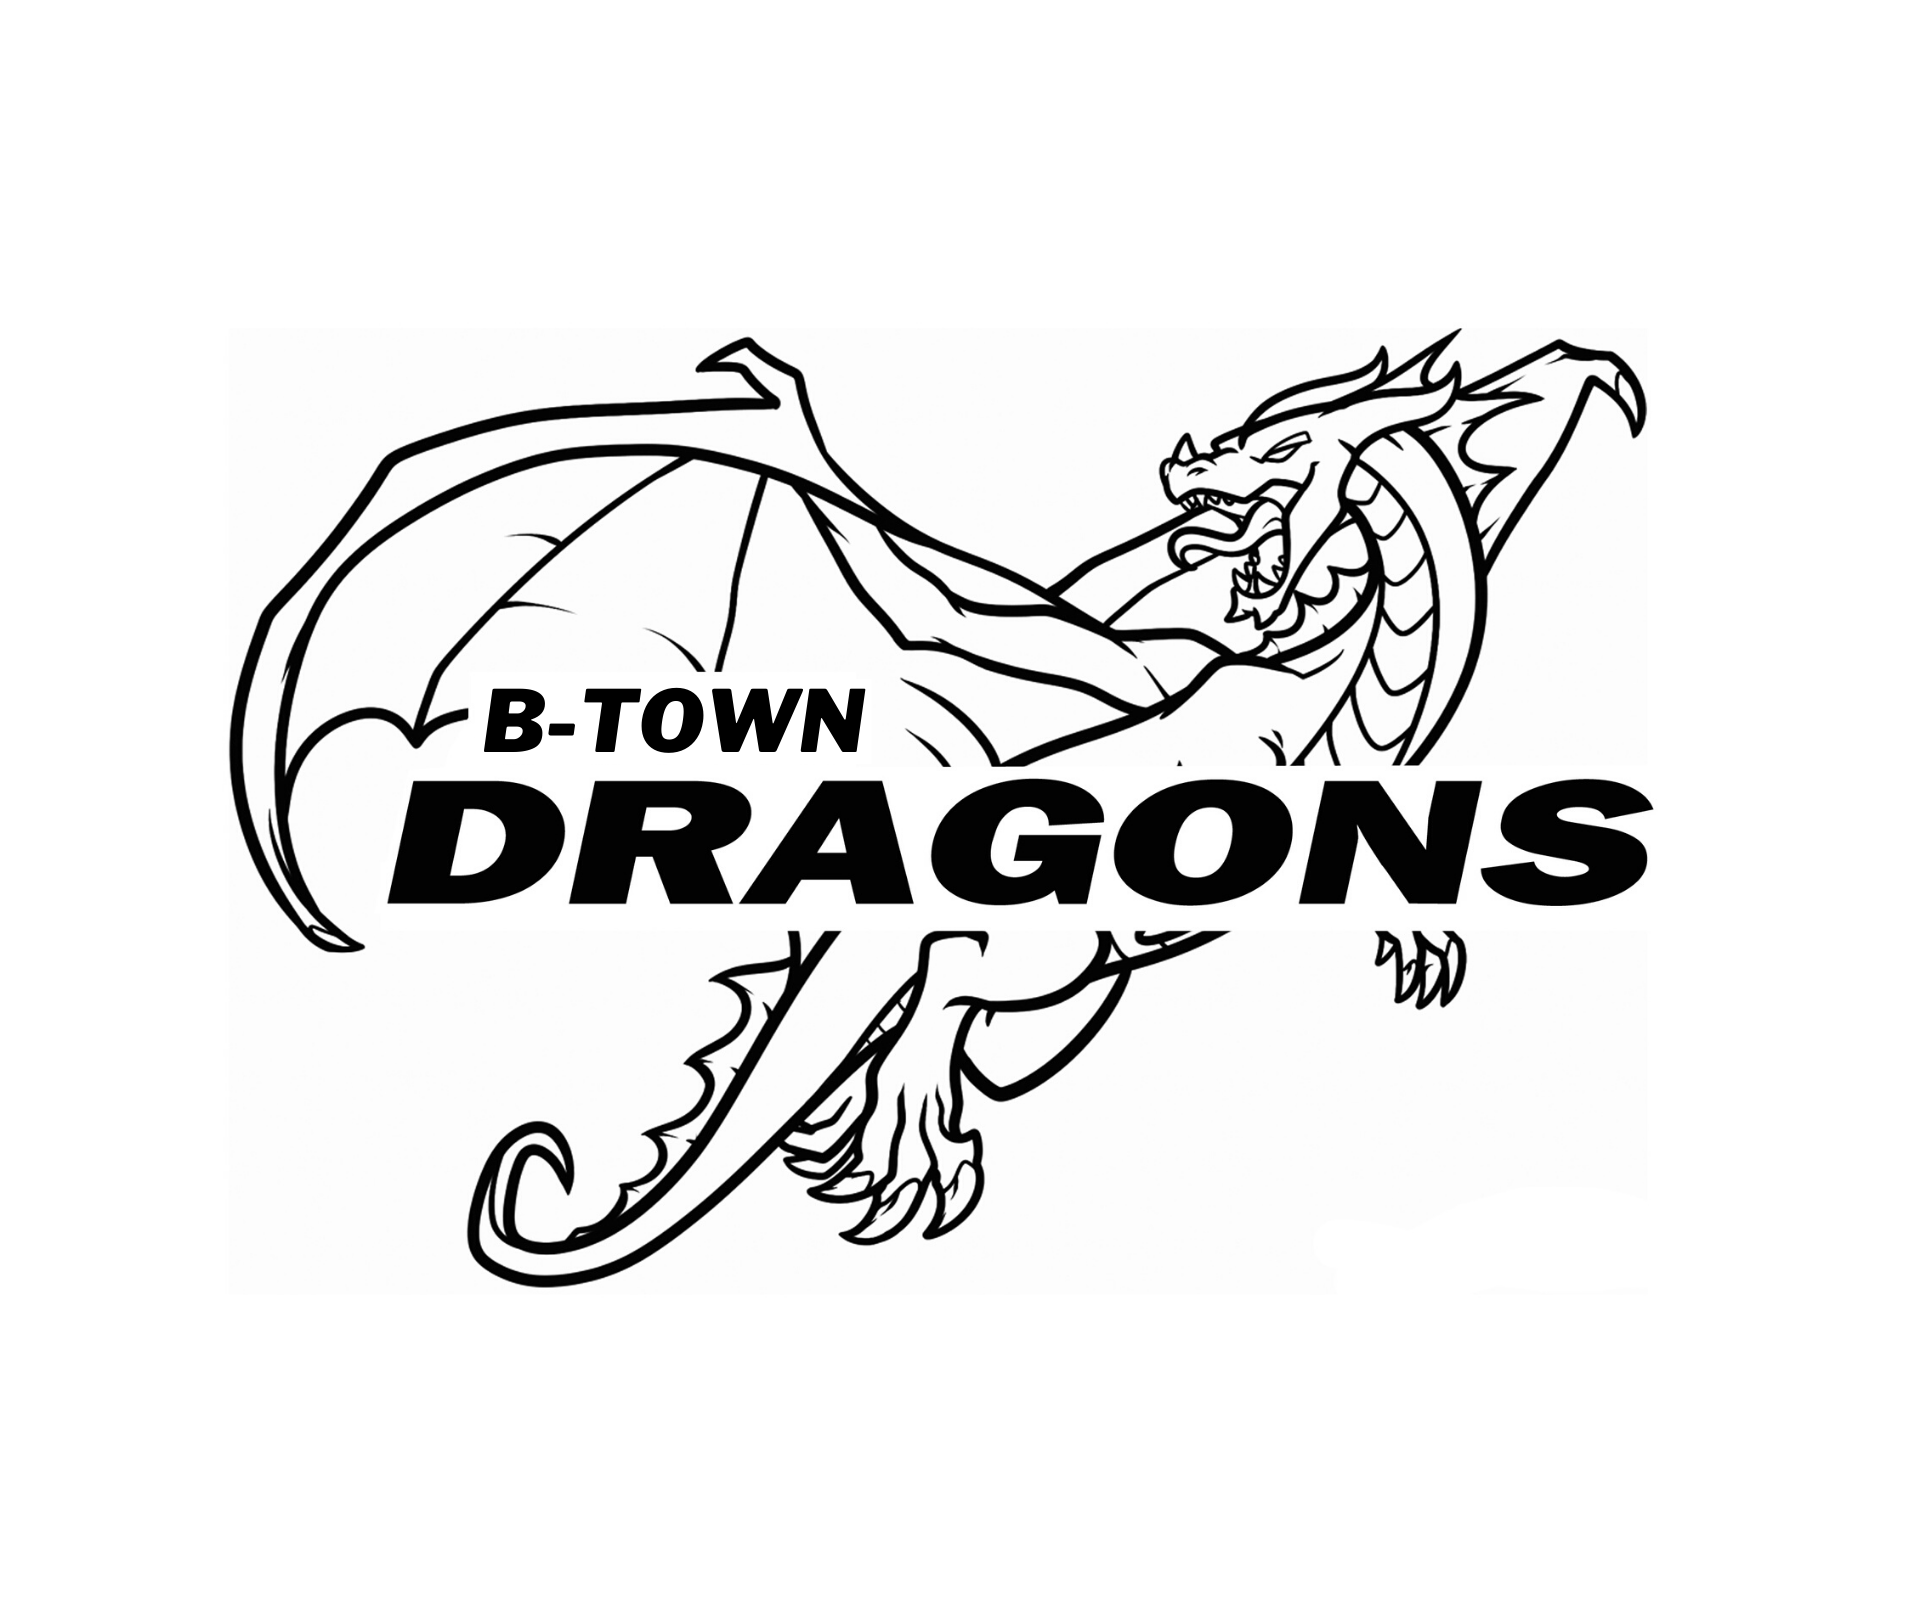 B-TOWN FULL DRAGON LOGO